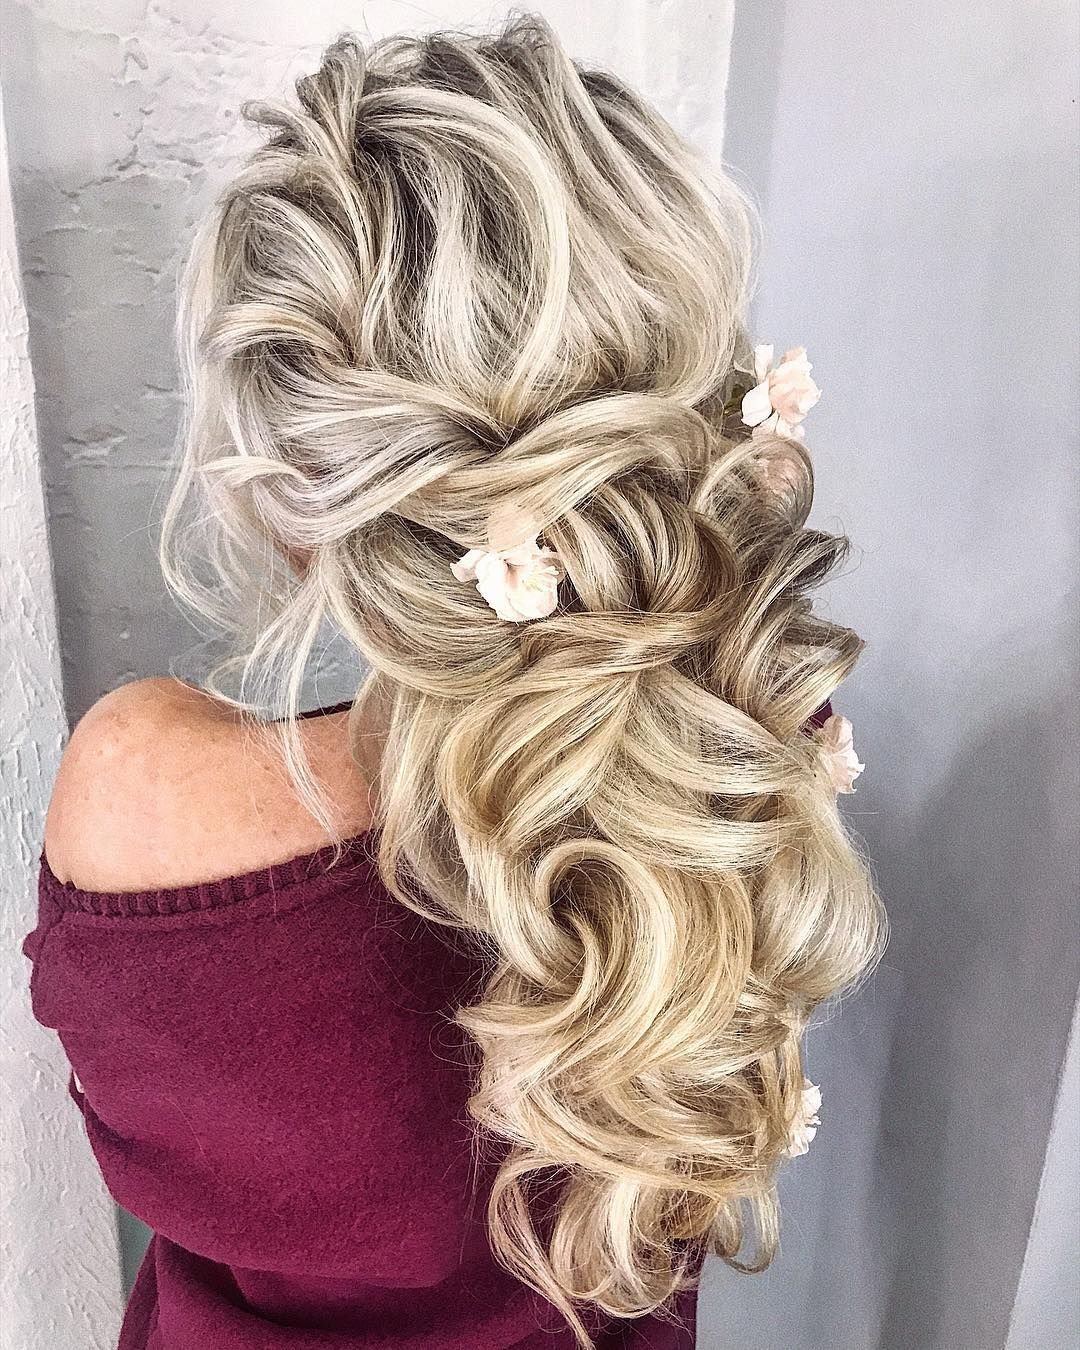 Pin by lenore telesca on wedding hair pinterest hair style and